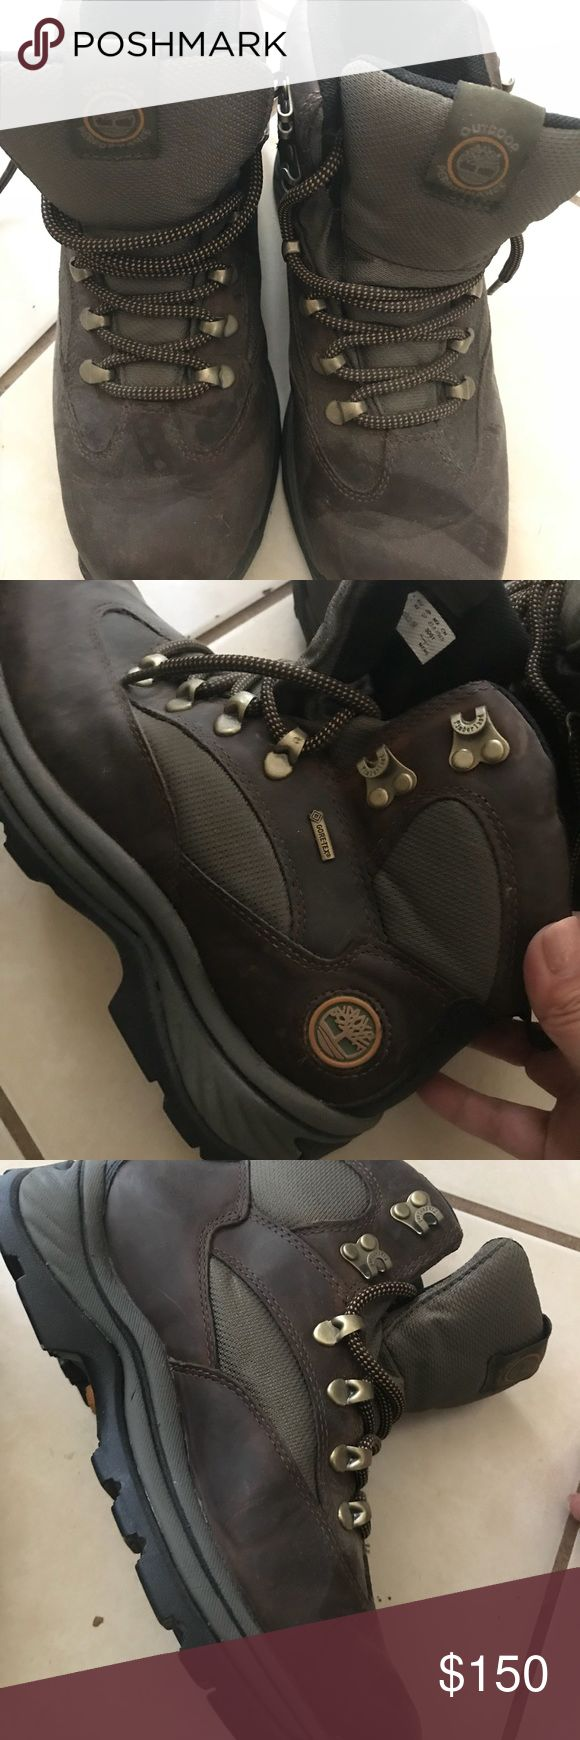 Timberland hiking boots Timberland hiking boots. Only worn once, for one weekend campout and was not exposed to water or mud. They are essentially in excellent condition. Leather, waterproof, padded ankle support. These boots are made for walkin'! Timberland Shoes Boots